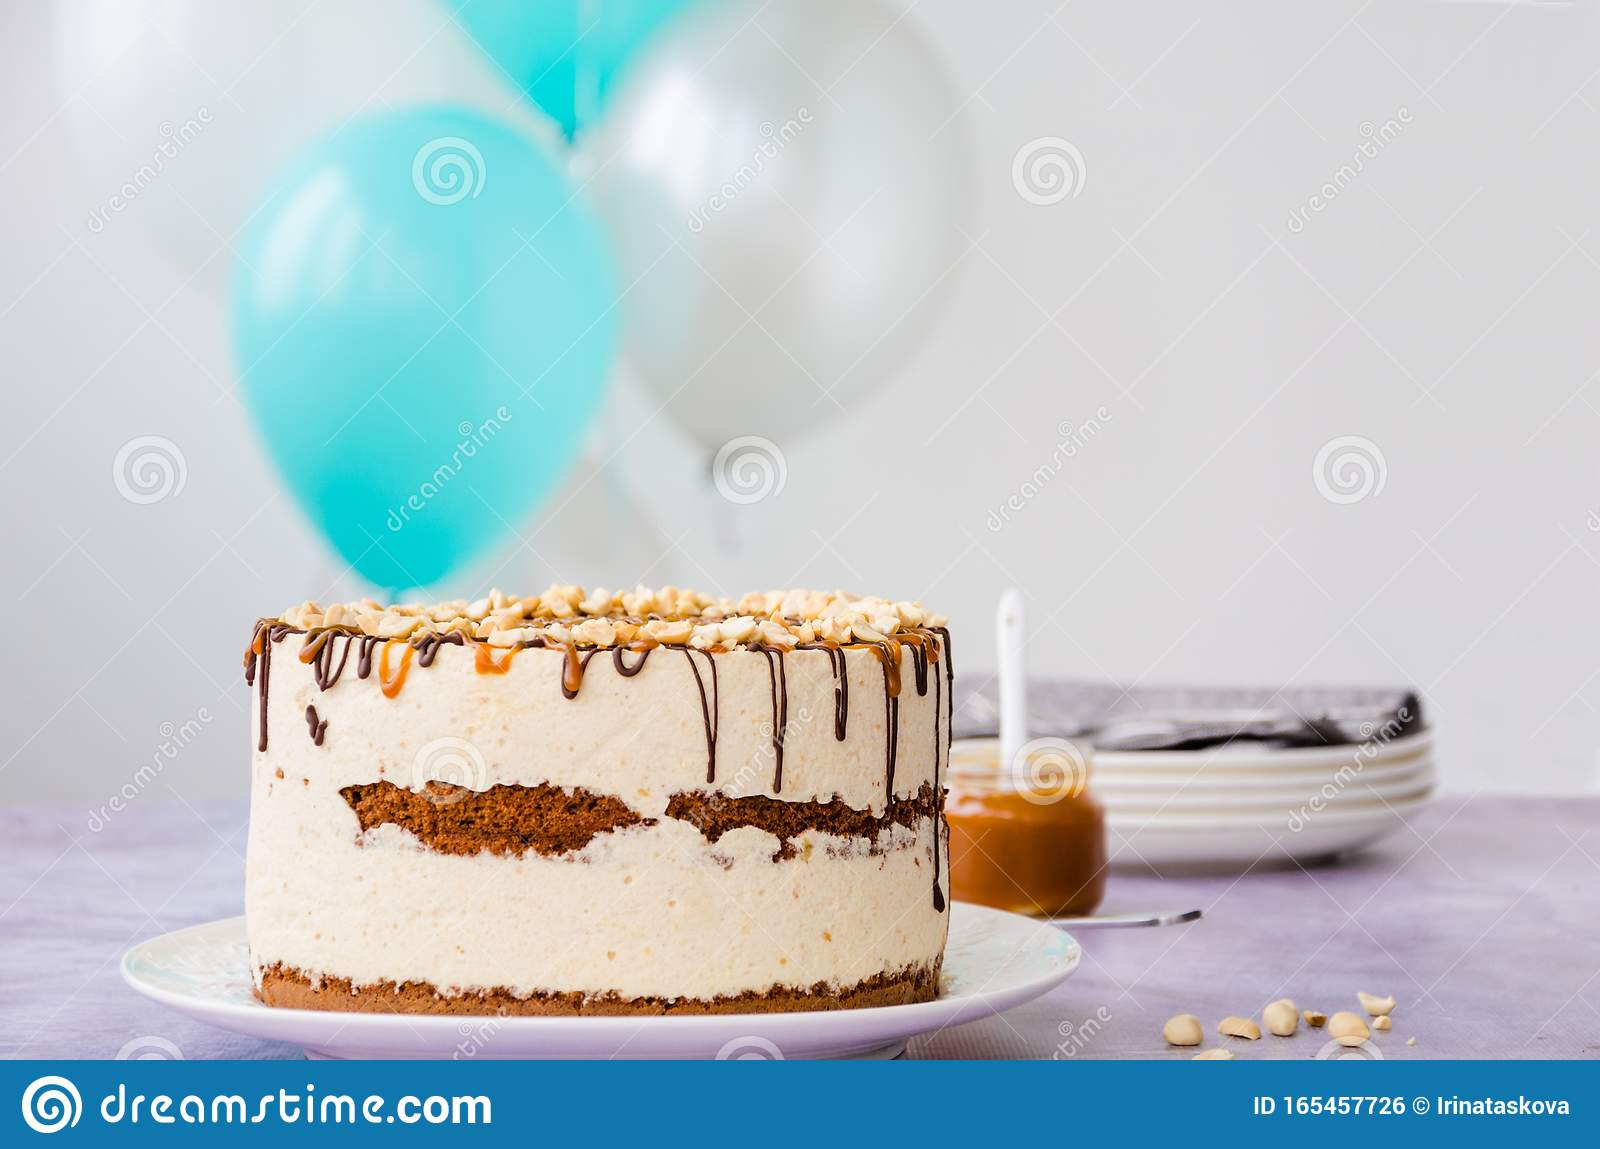 Superb Birthday Cake Snickers Homemade Holiday Cake With Caramel Nougat Funny Birthday Cards Online Hetedamsfinfo